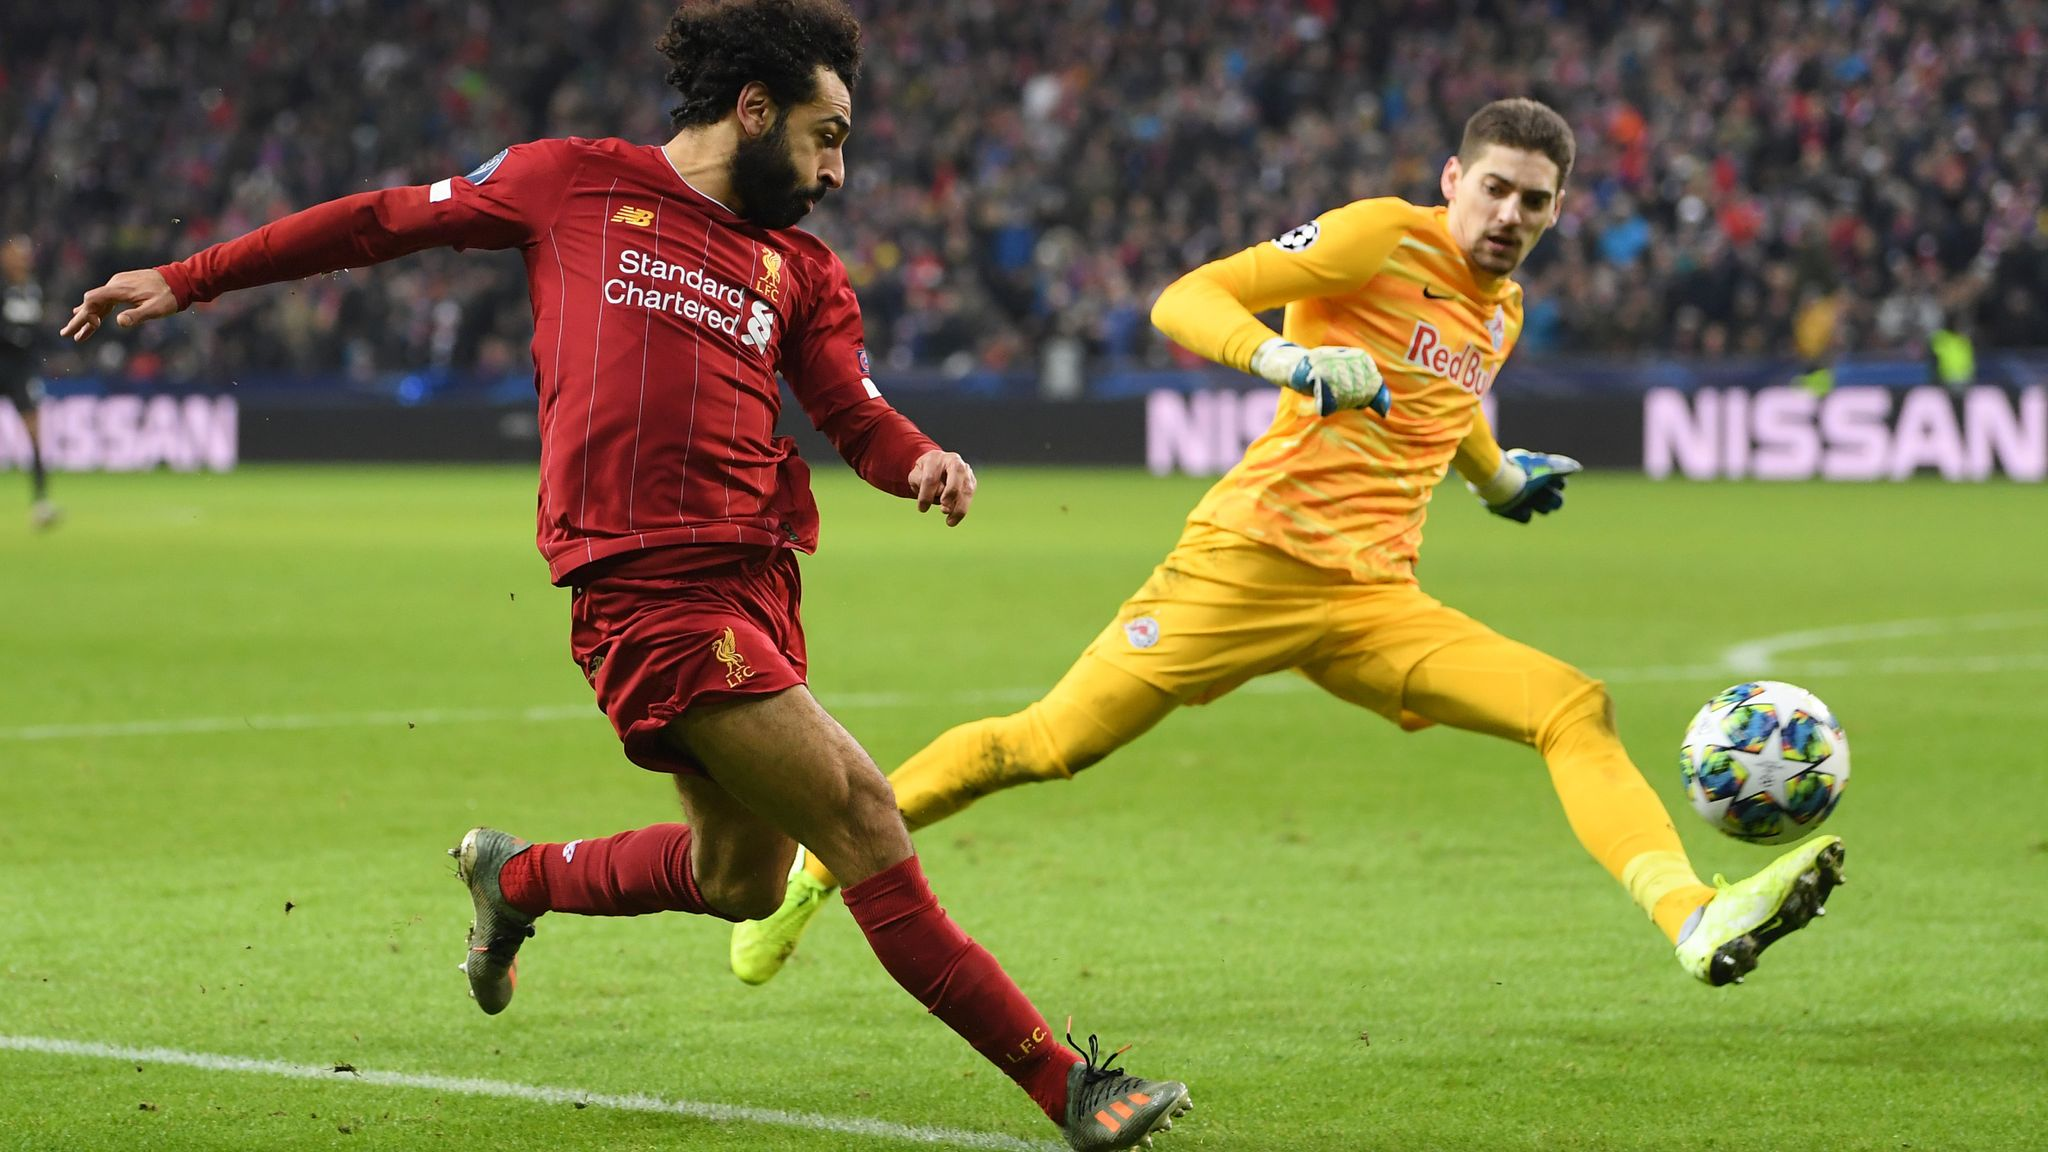 Red Bull Salzburg 0-2 Liverpool: Naby Keita and Mohamed Salah score to seal top spot in Group E